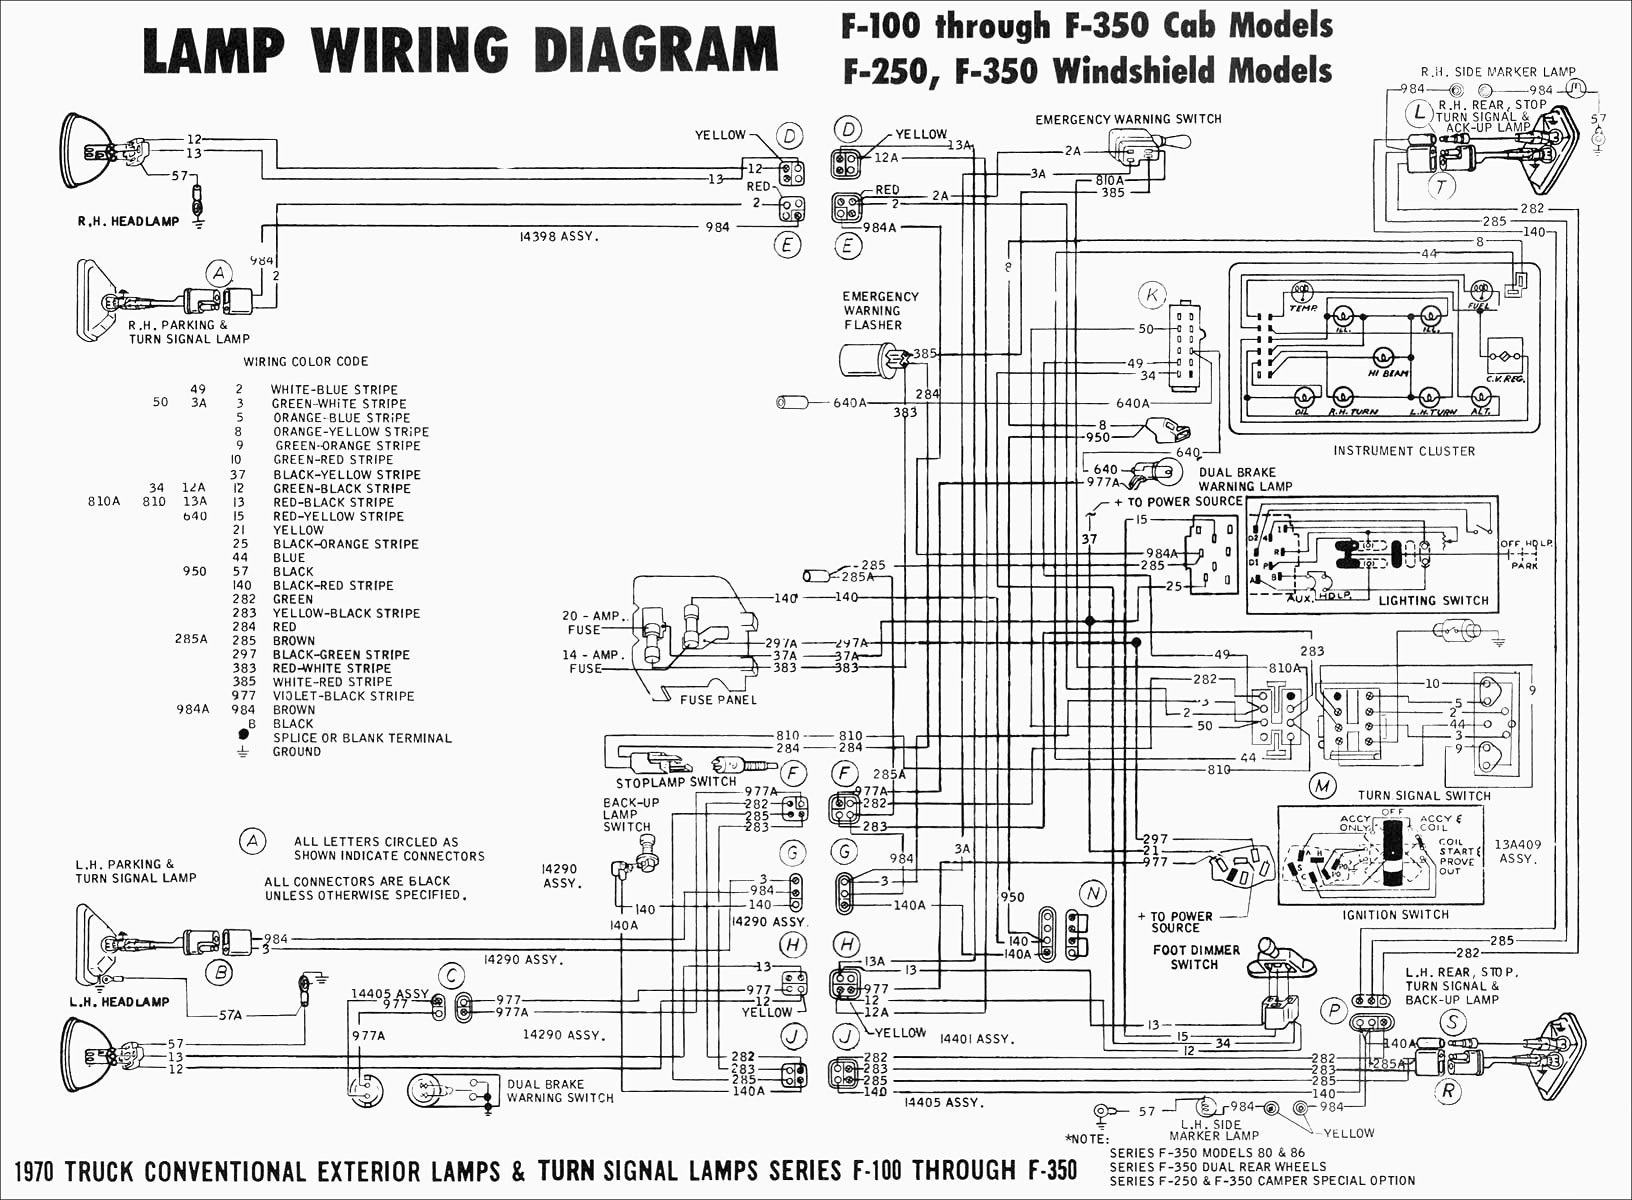 2000 jeep grand cherokee brake light switch wiring diagram image 1997 chevy  brake